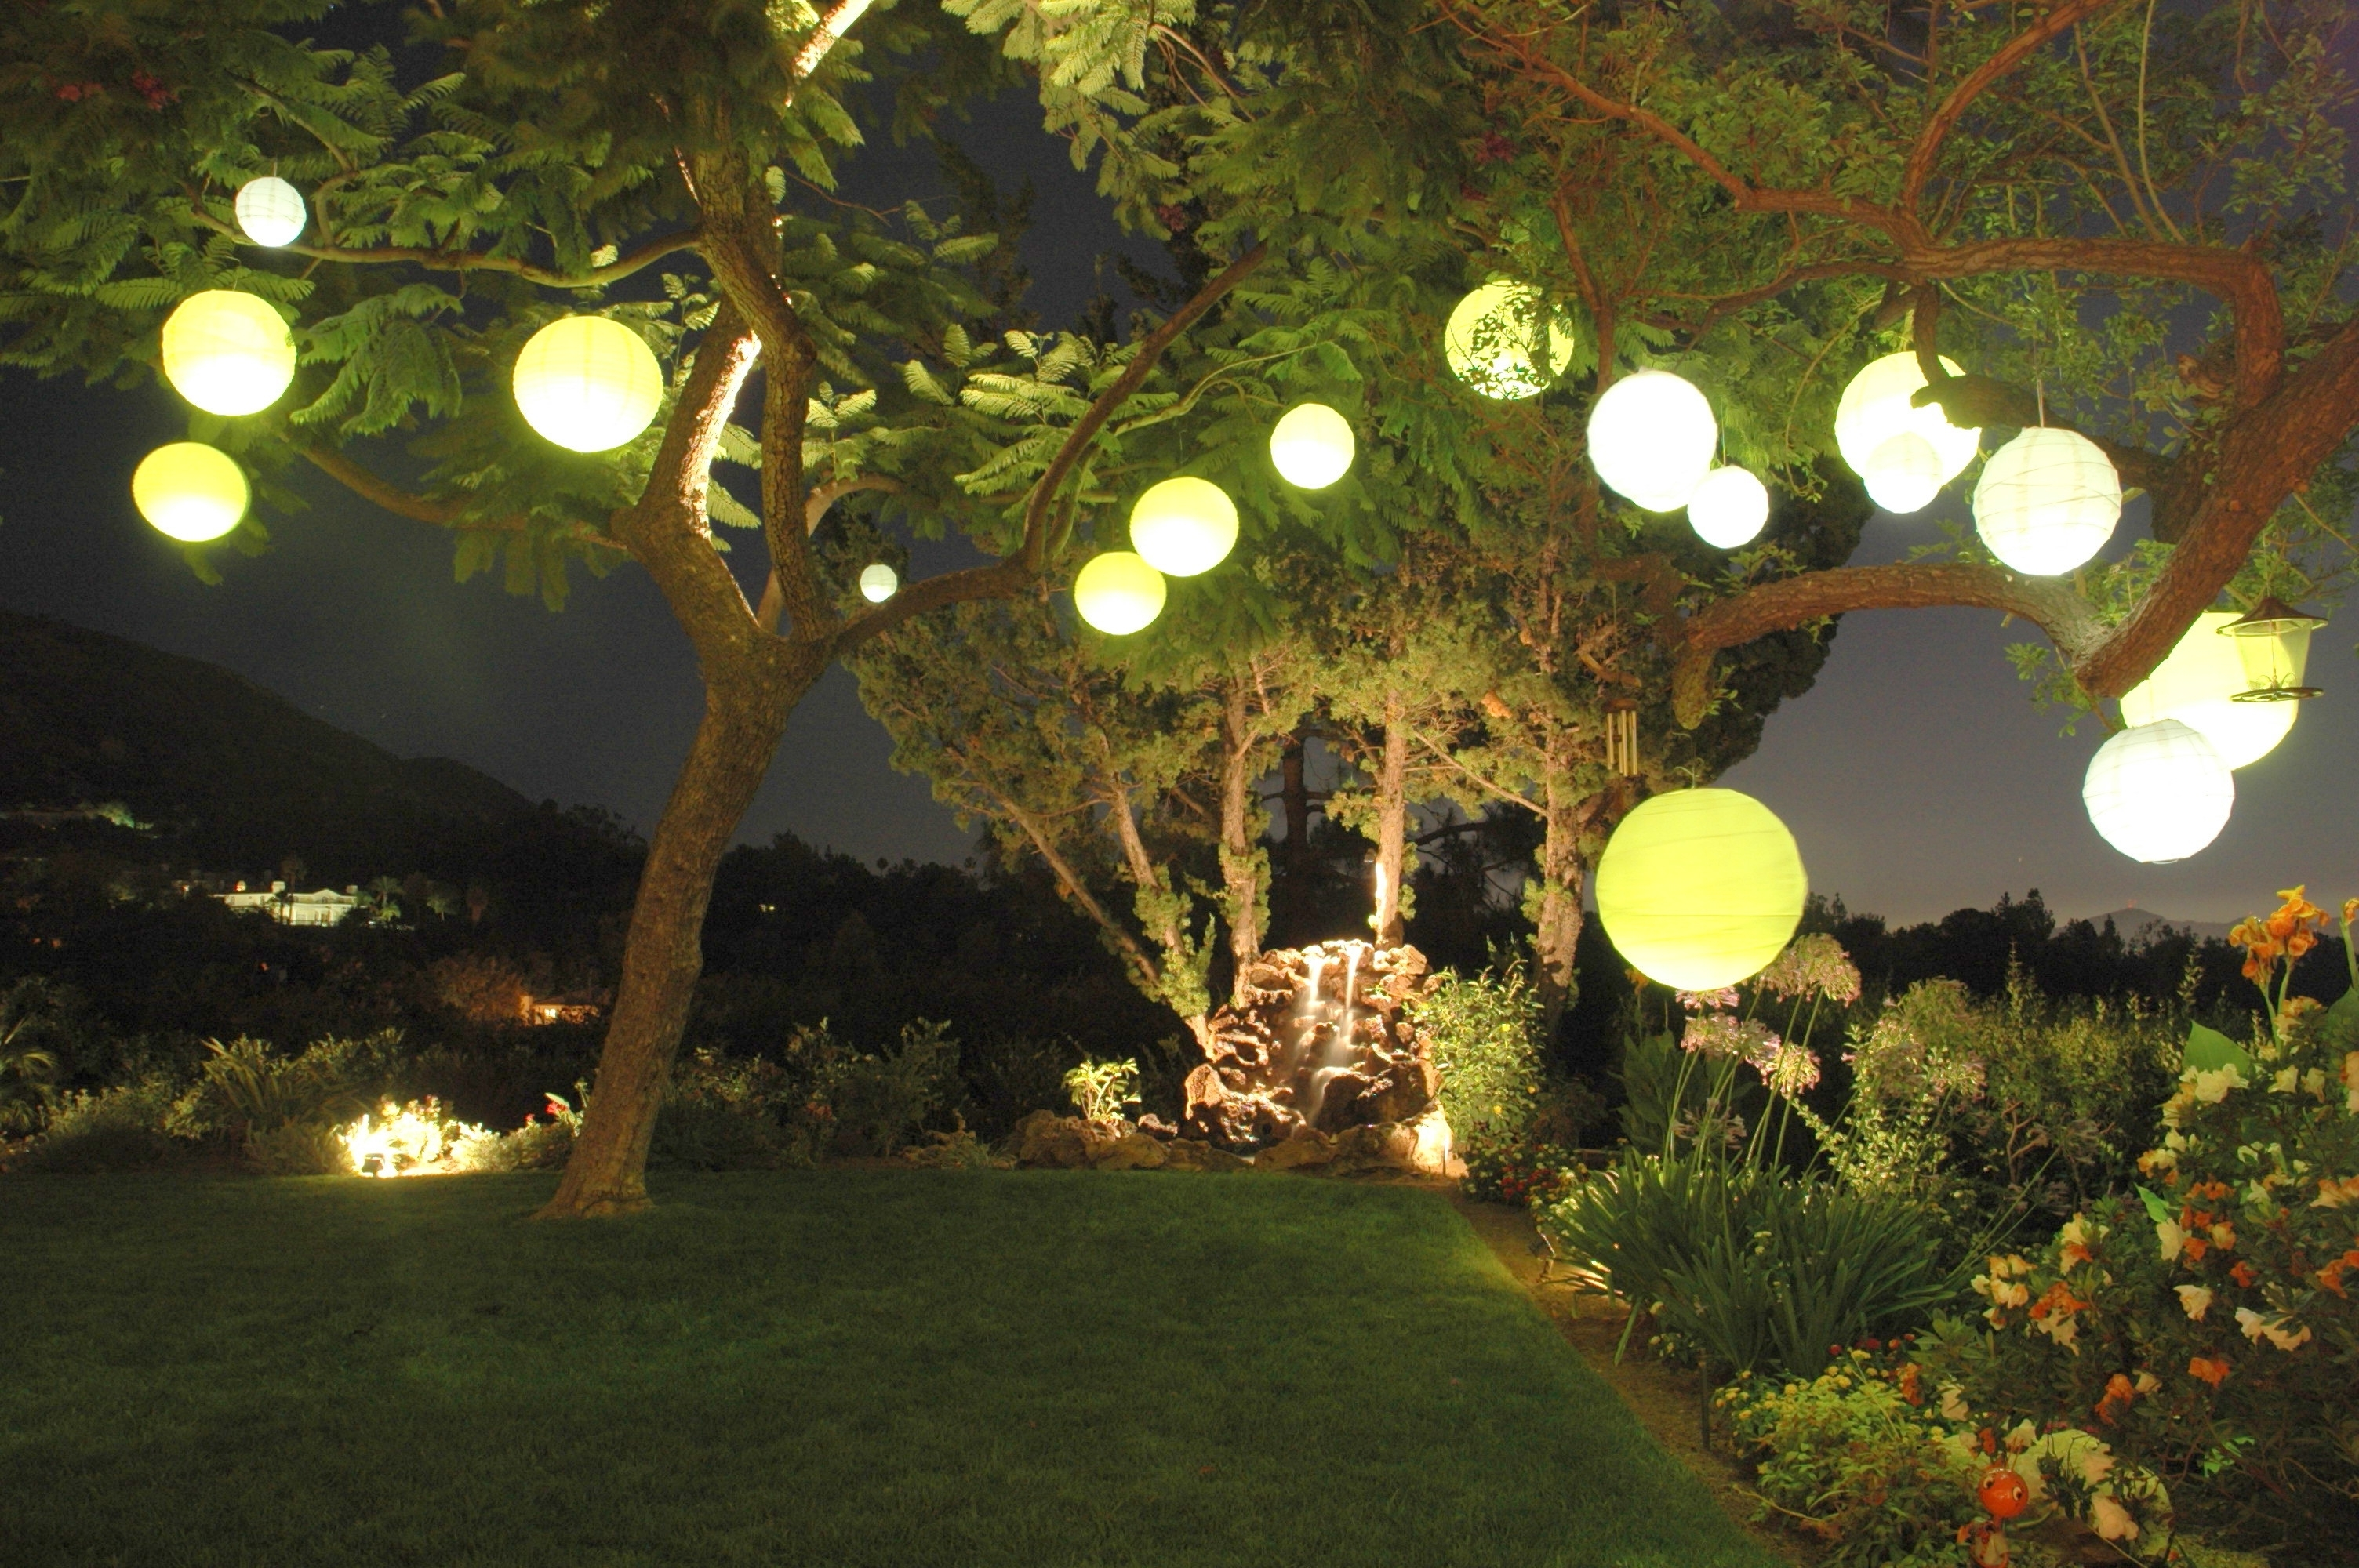 Popular Decorating: Garden Party With Paper Lantern Light Intended For Outdoor Lighting Japanese Lanterns (View 20 of 20)